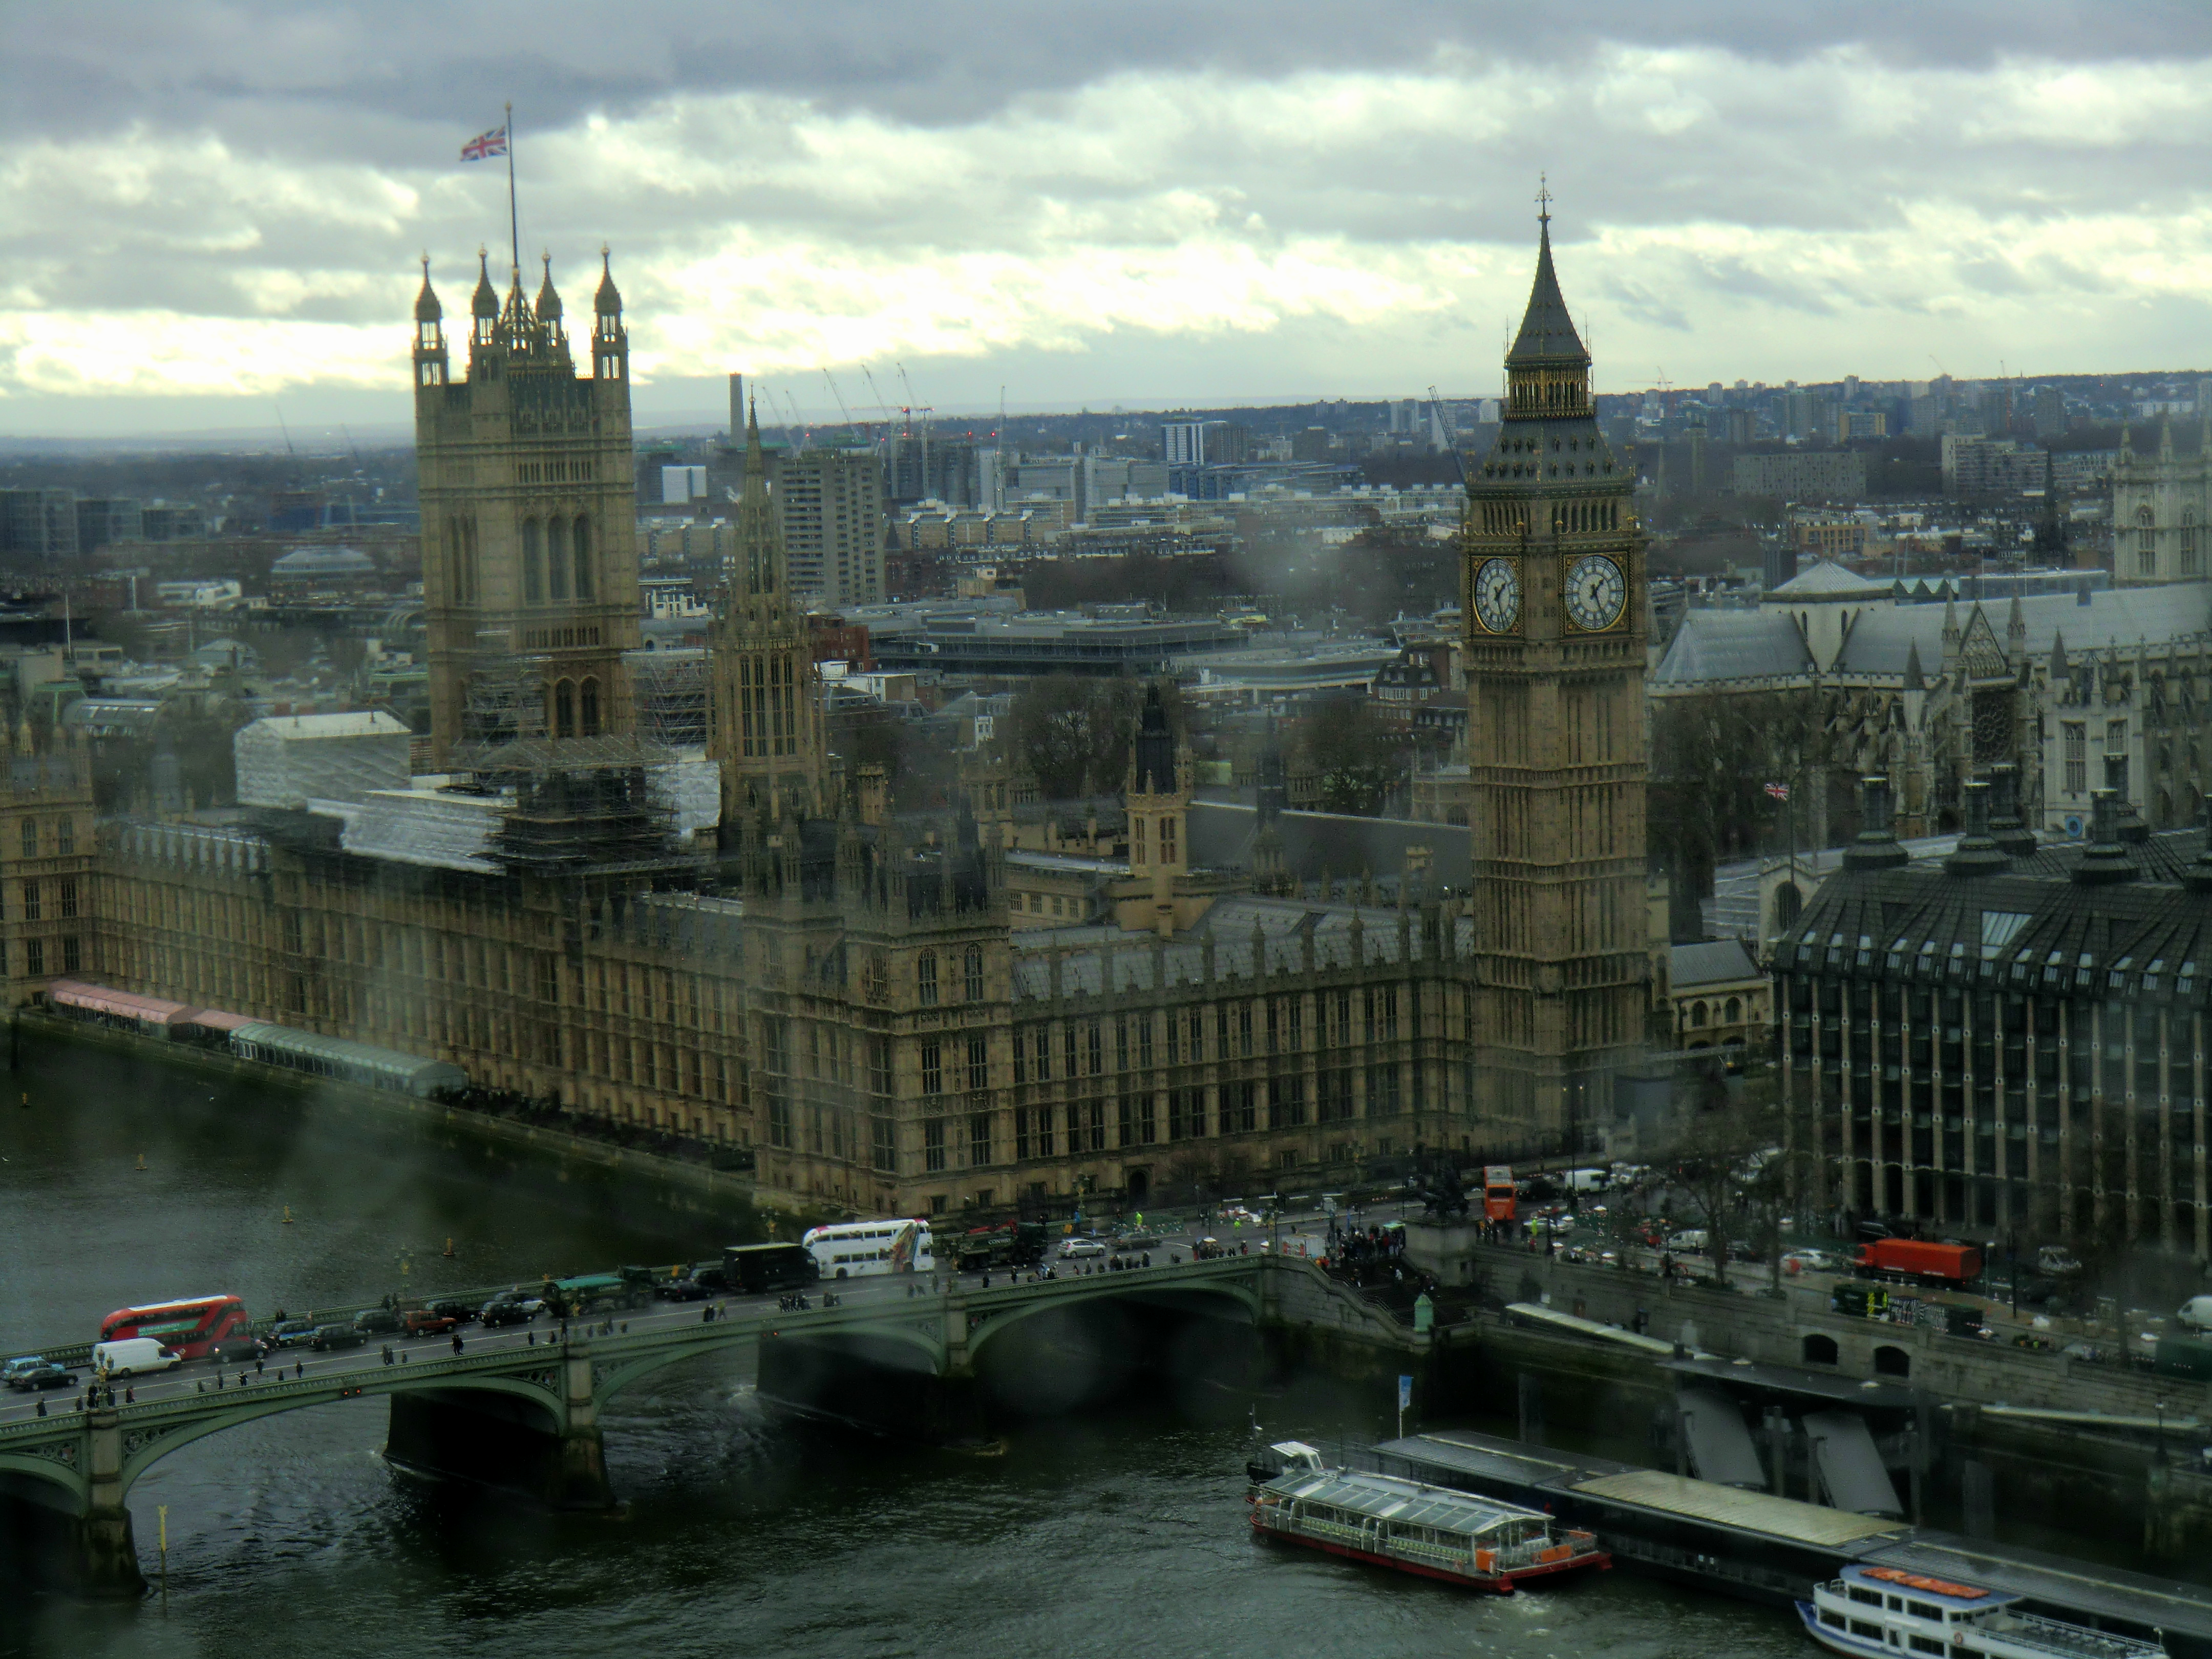 Londres - Desde London Eye lluvioso-1.png